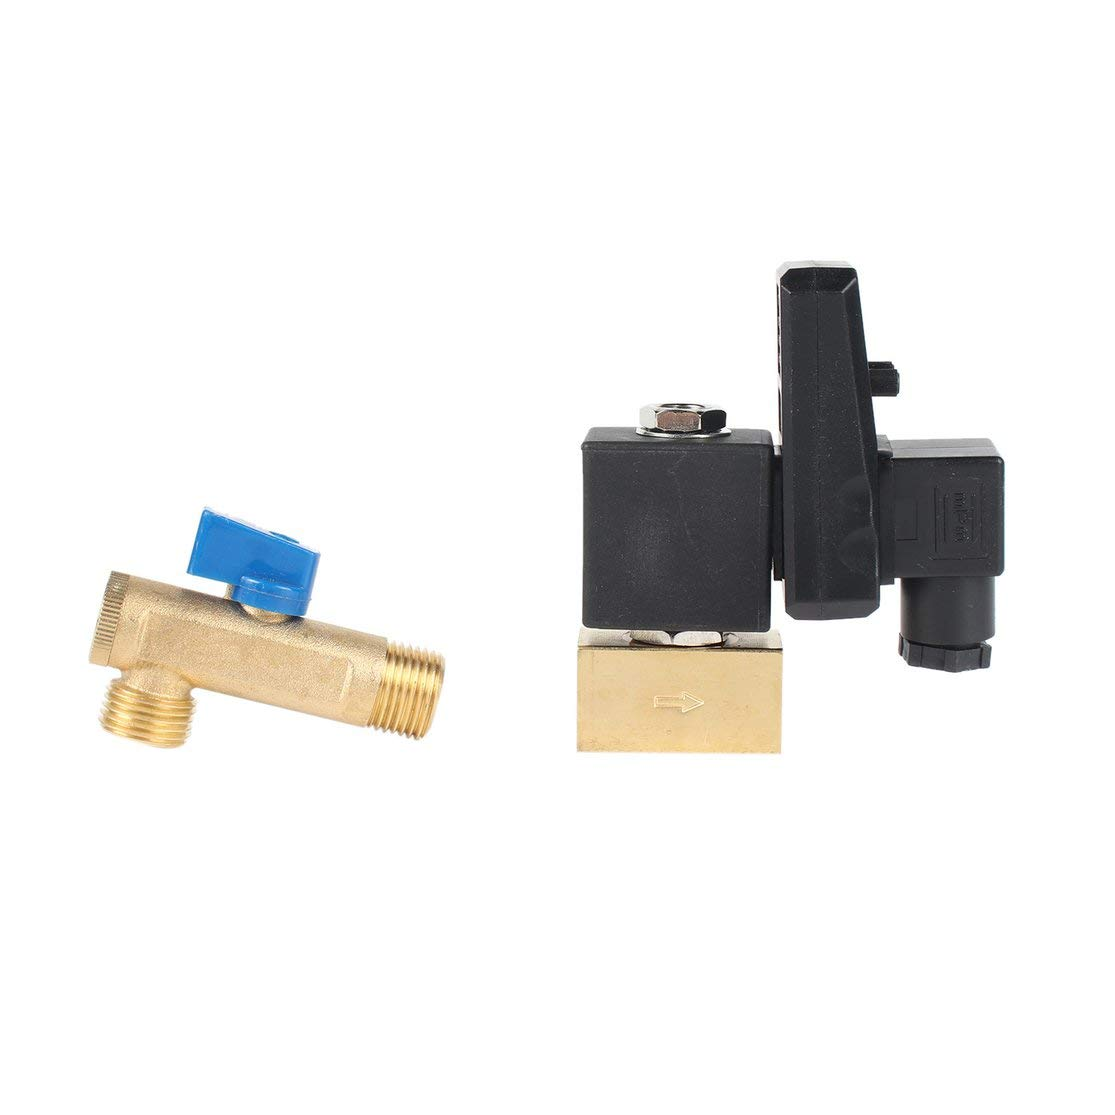 LouiseEvel215 Electronic Drain Valve Timed Gas Tank Automatic Drain Valve 1//2 Port AC 220V 2-way Brass Valve for Air Compressor